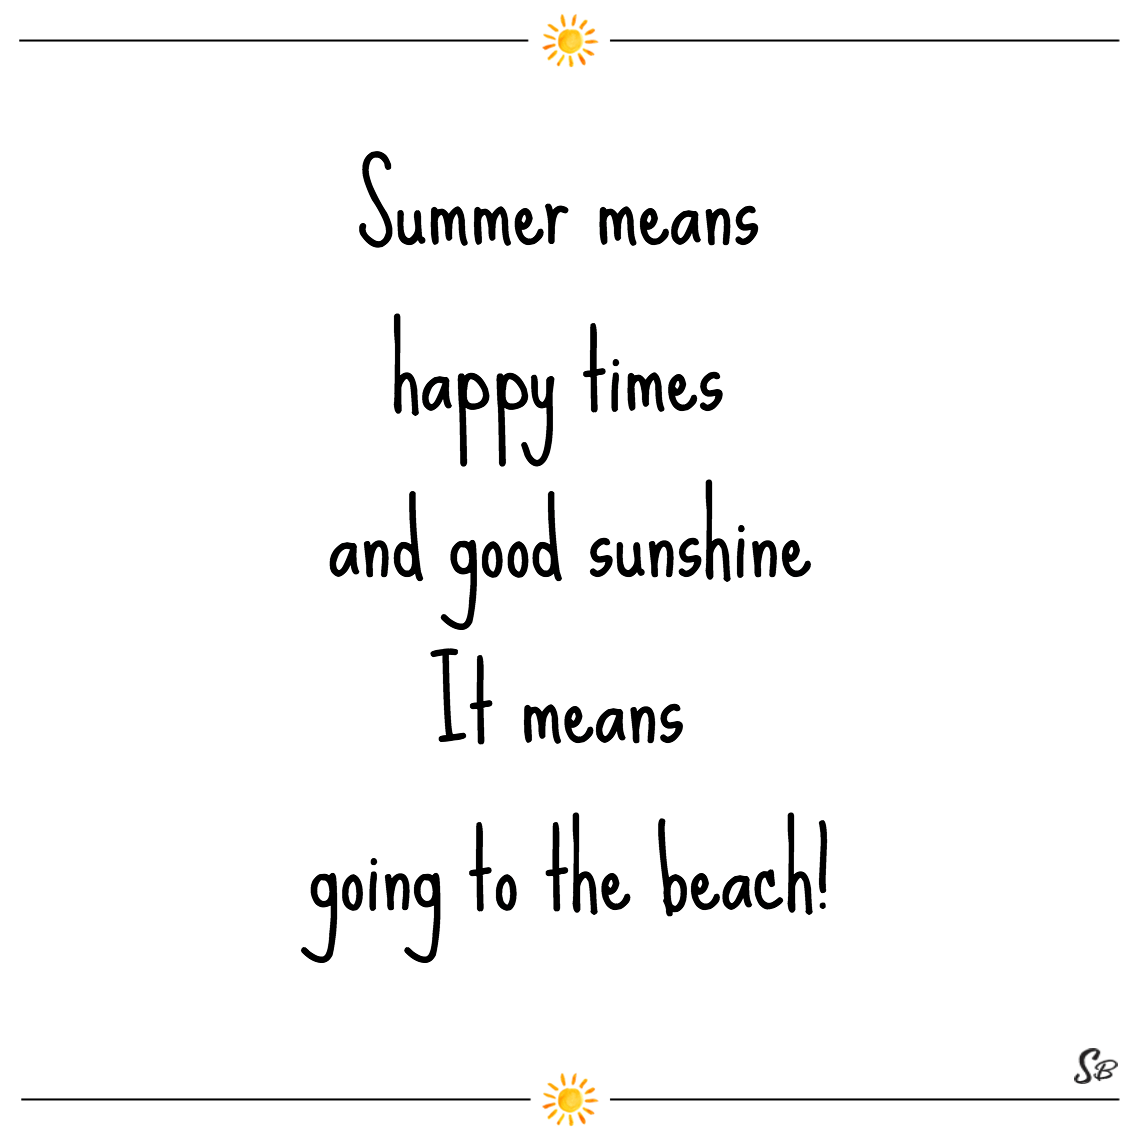 Summer means happy times and good sunshine it means going to the beach! brian wilson